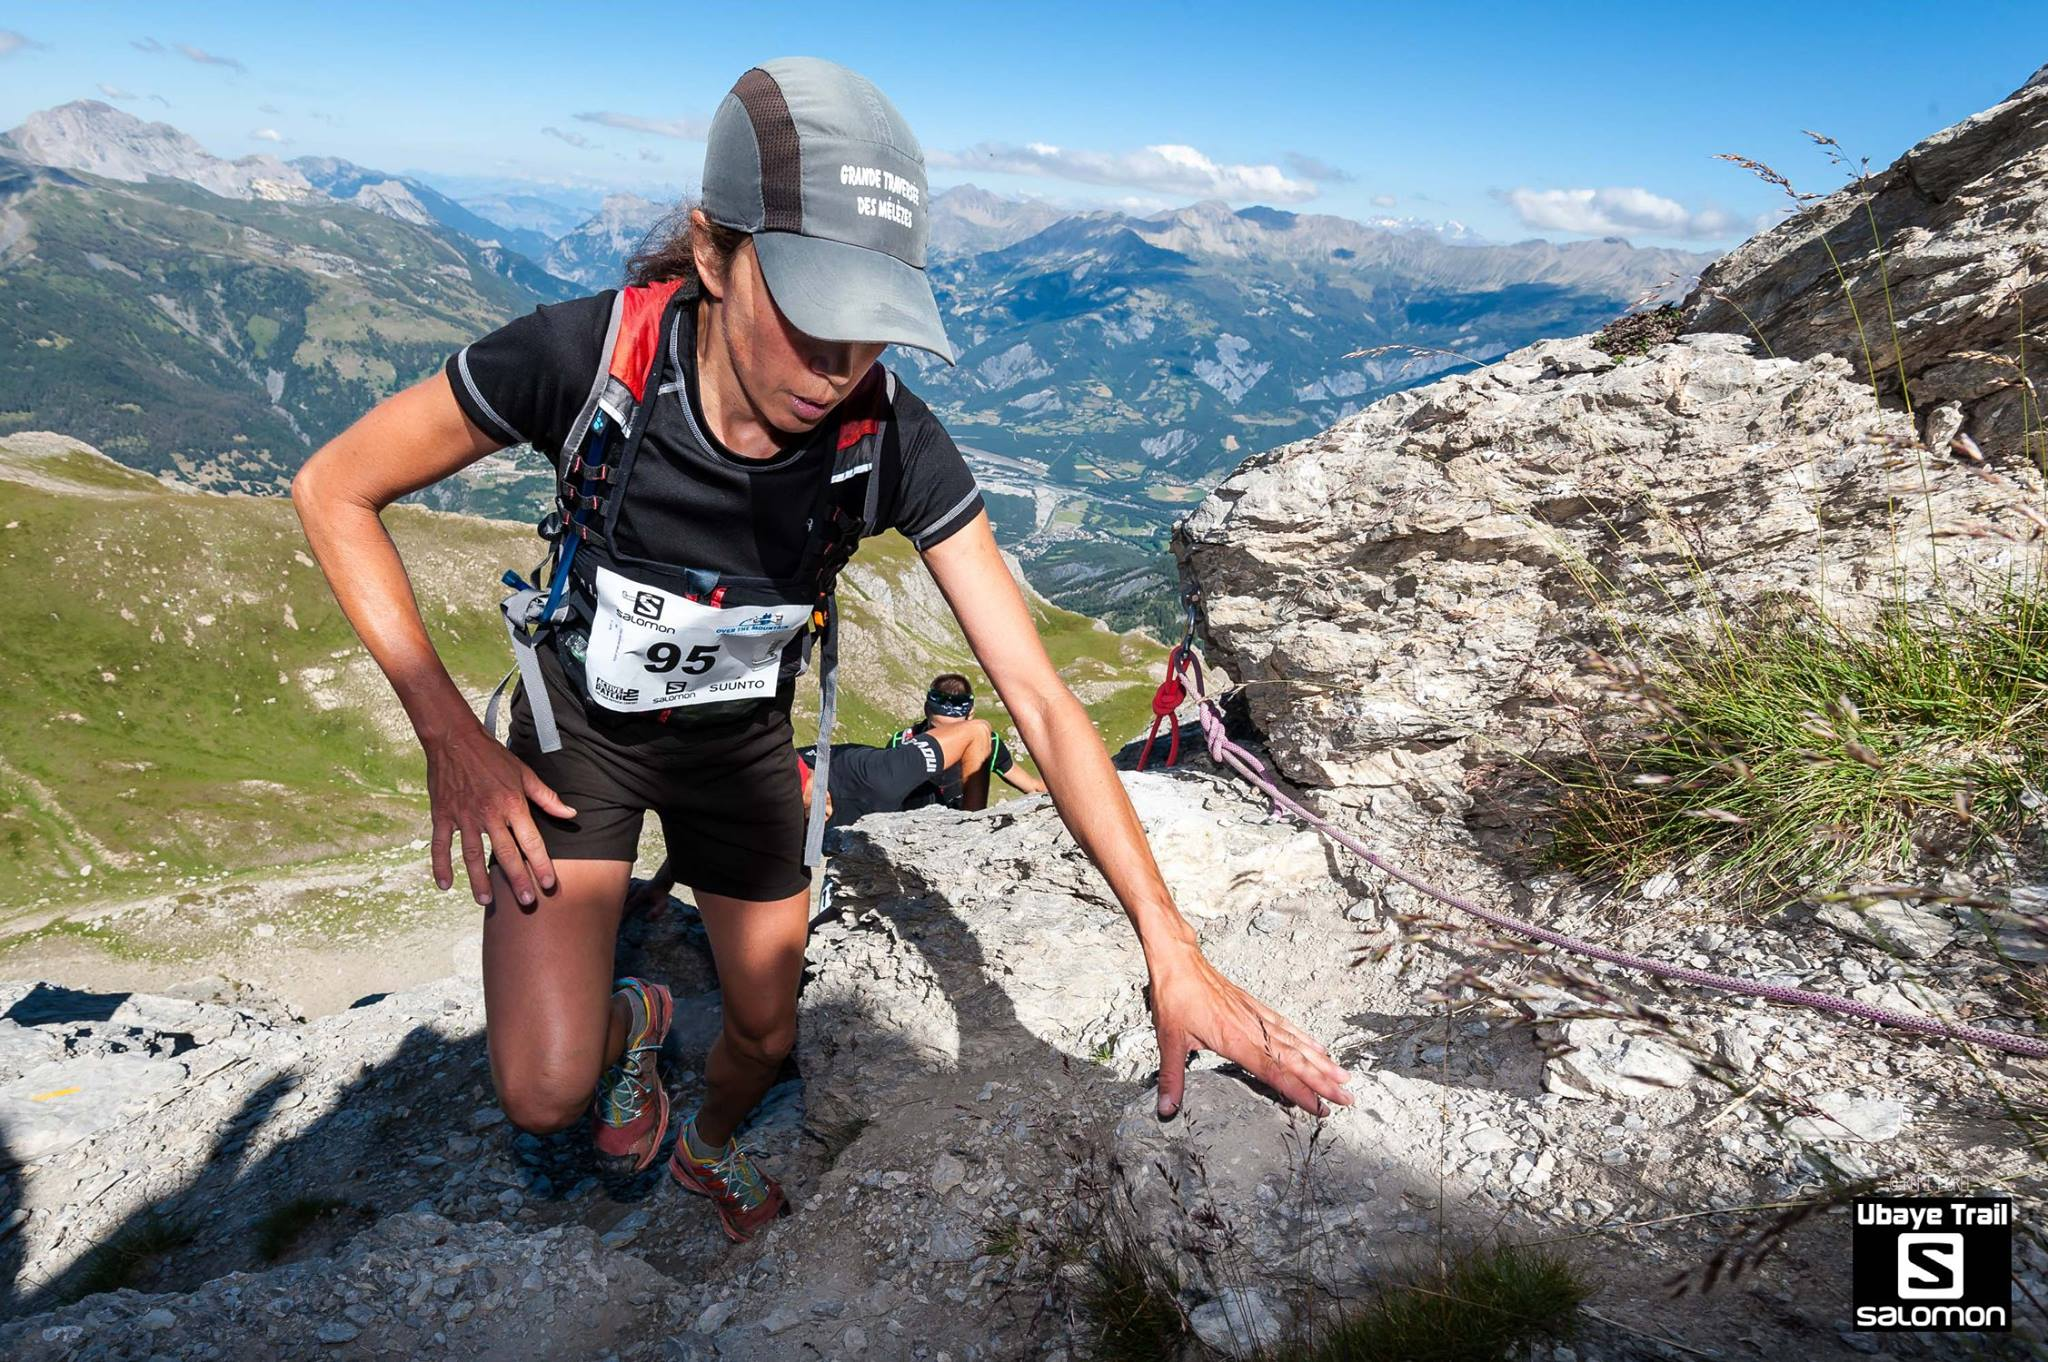 13668731 1031226070259540 7141542128604204366 o - NATIONAL : RESULTATS ET VIDEO DE L'UBAYE TRAIL SALOMON